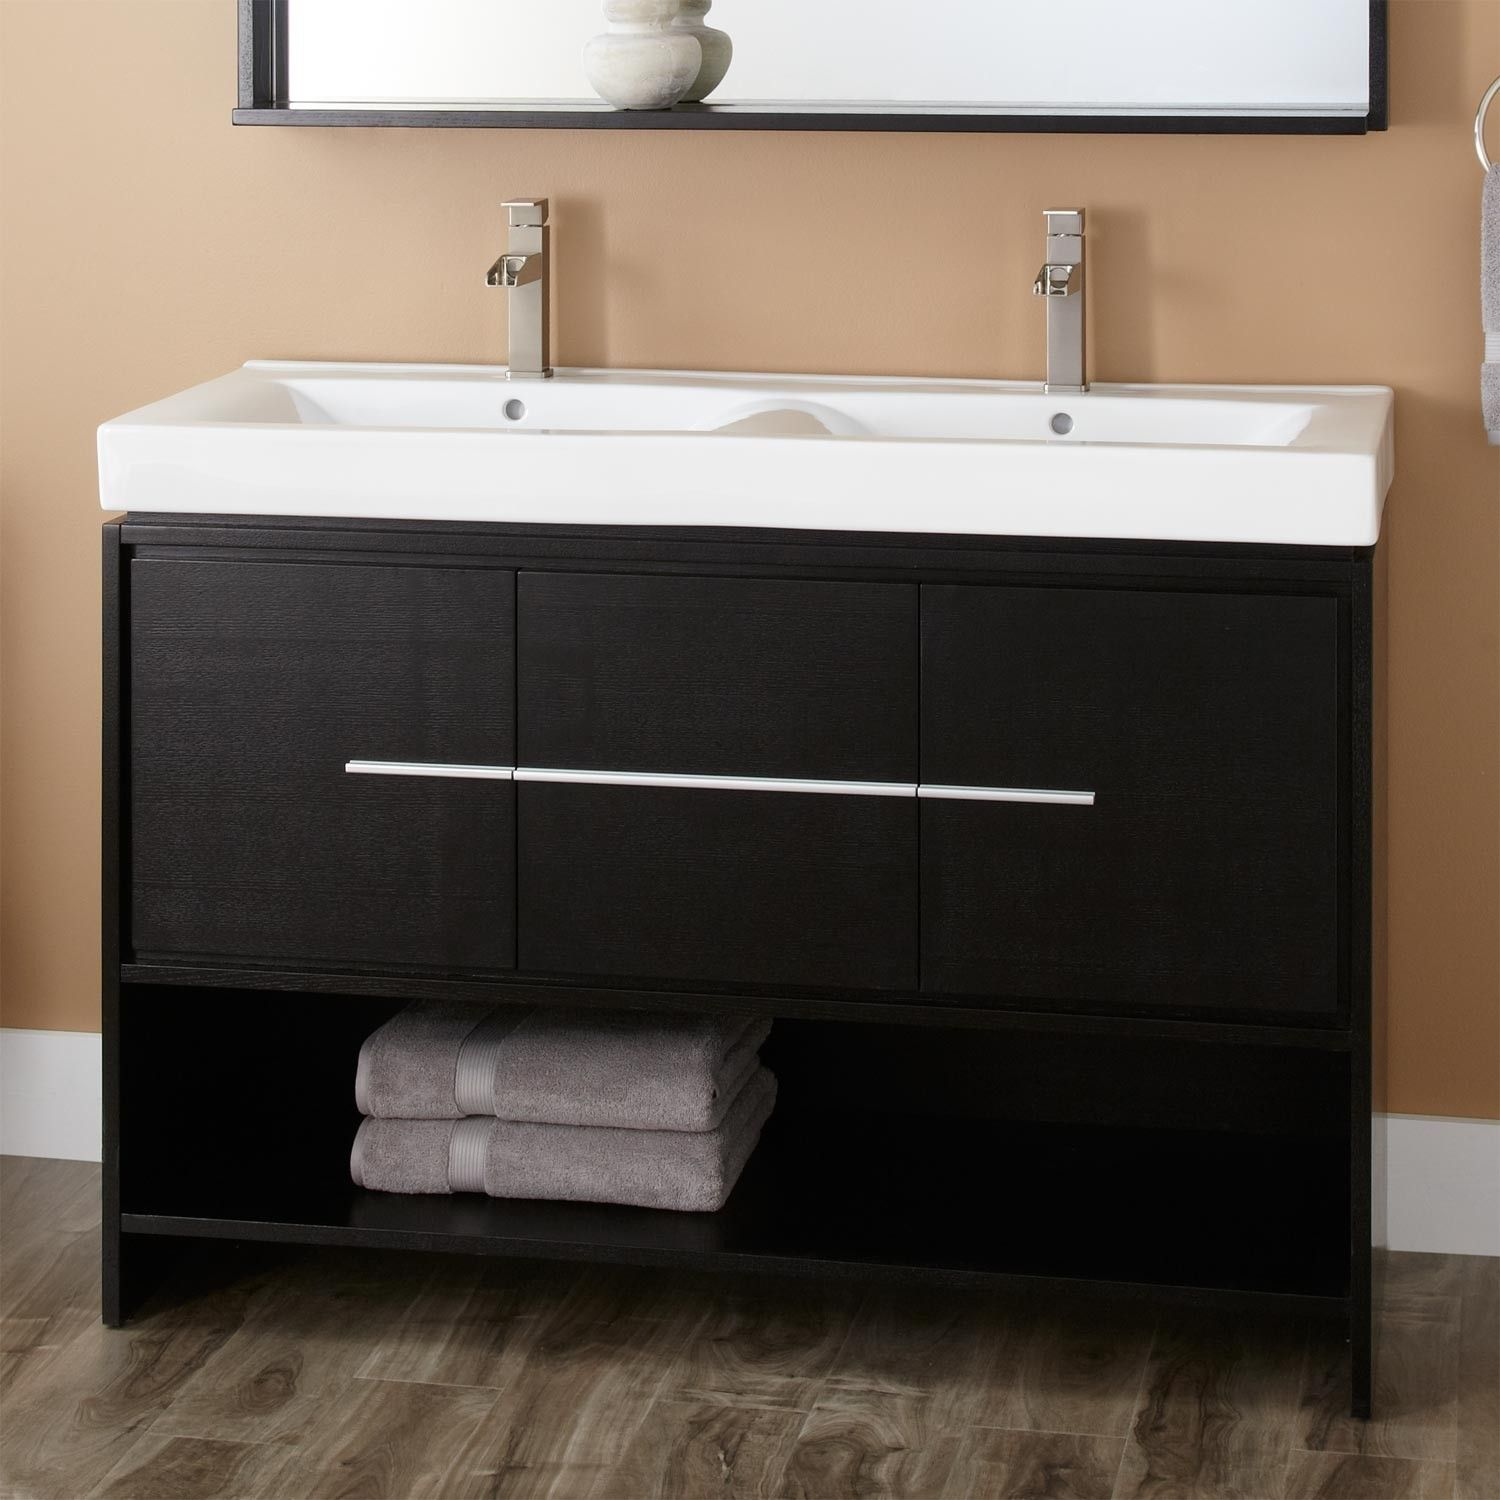 48 Kyra Double Vanity Black Vanities Bathroom Vanities And Double